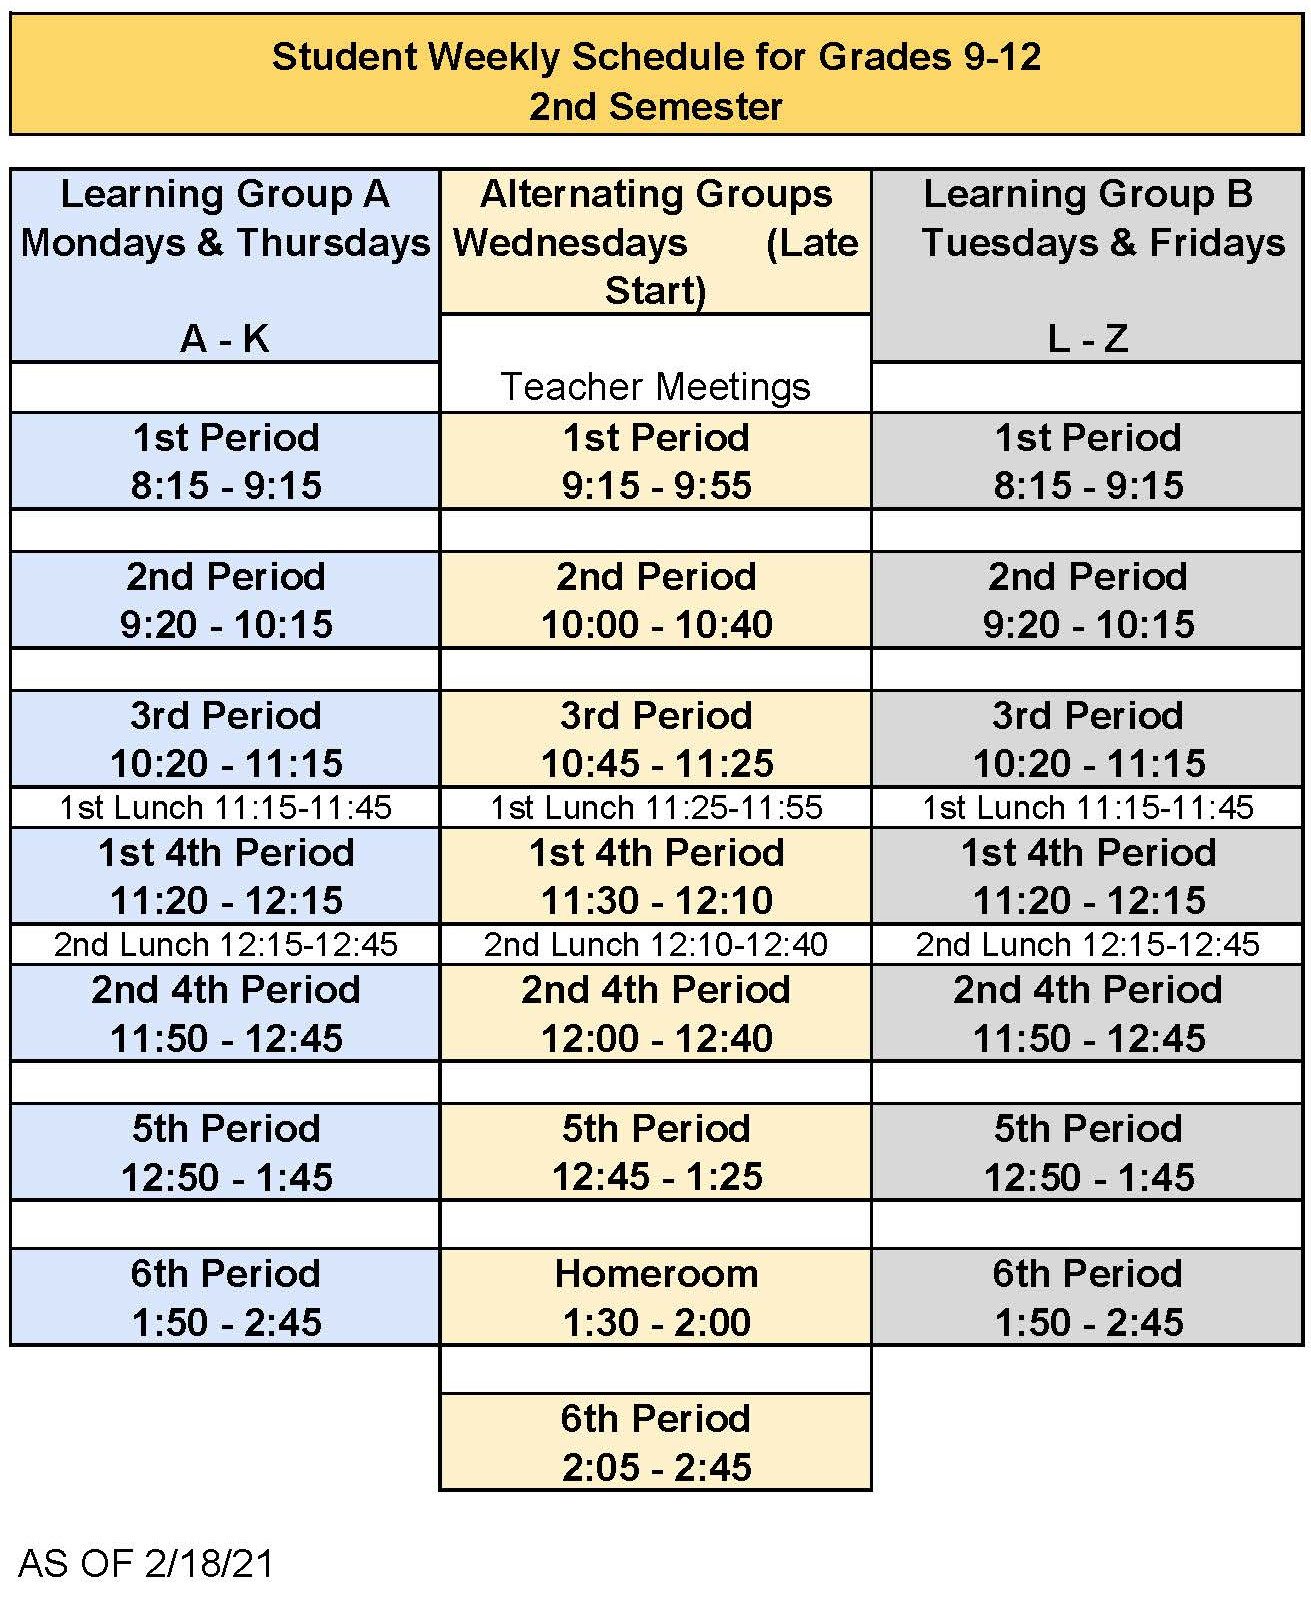 LCHS Weekly Schedule for Grades 9-12 2nd Semester